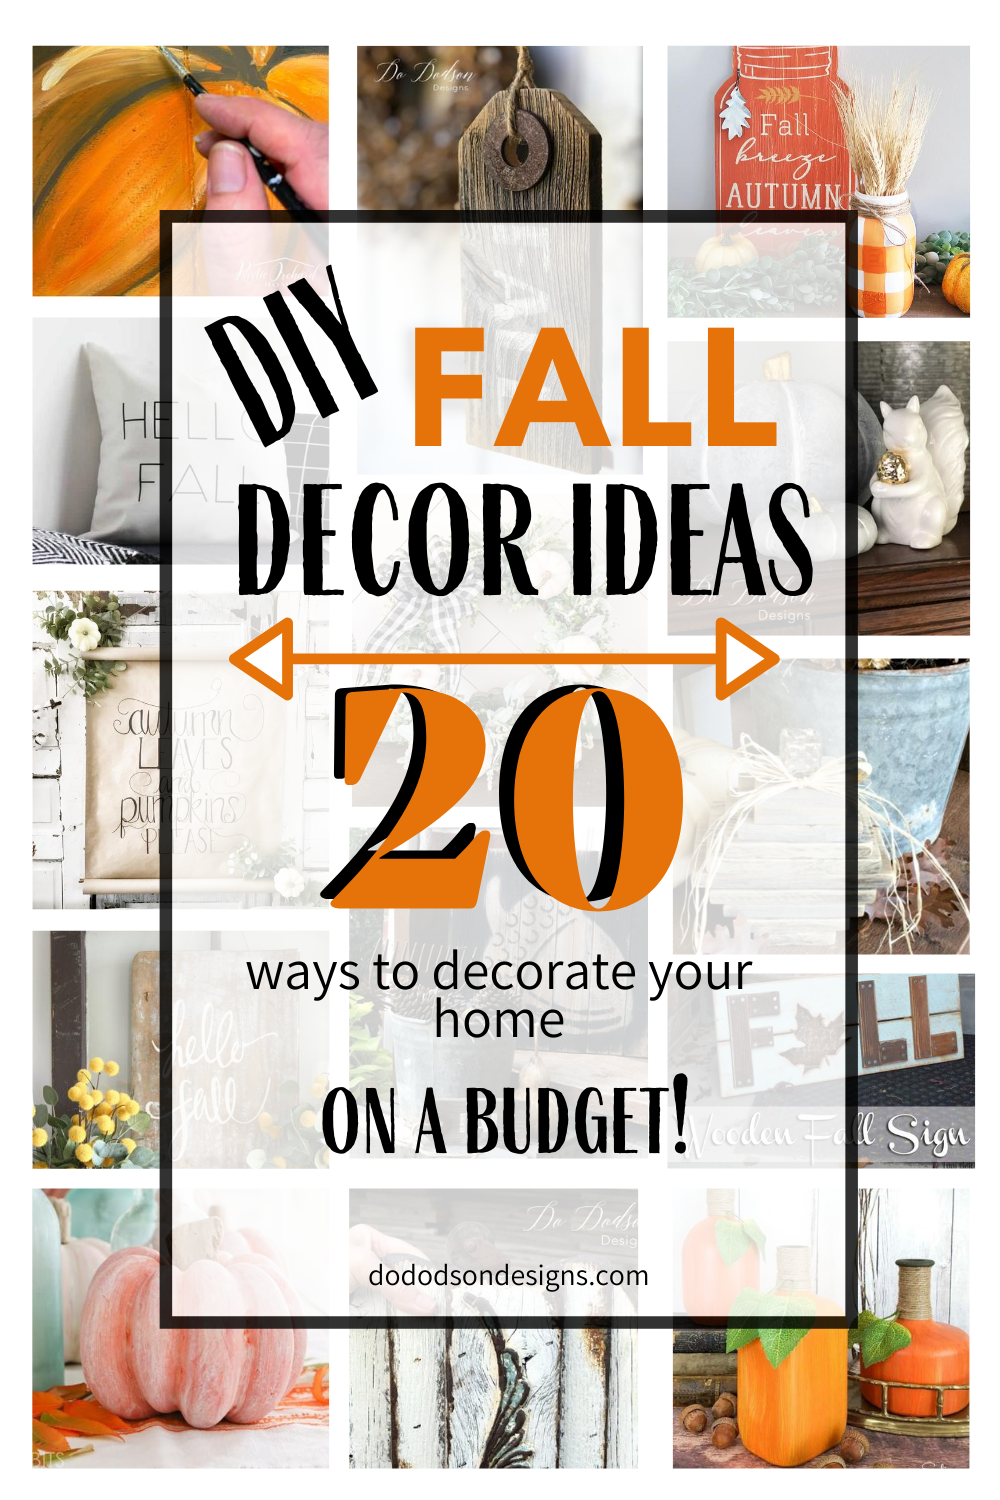 19 Amazing Diy Fall Decor Ideas For Your Home Fall Decor Diy Diy Fall Easy Diy Fall Decor